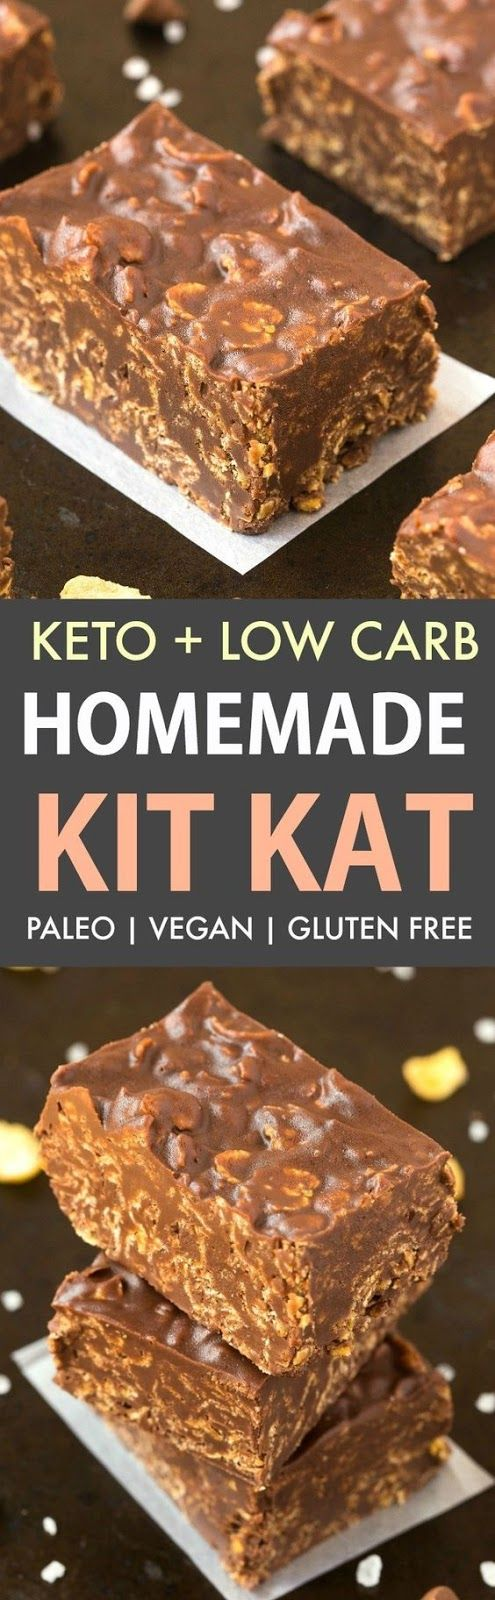 HEALTHY HOMEMADE KETO KIT KAT BARS (VEGAN PALEO) #hawaiianfoodrecipes